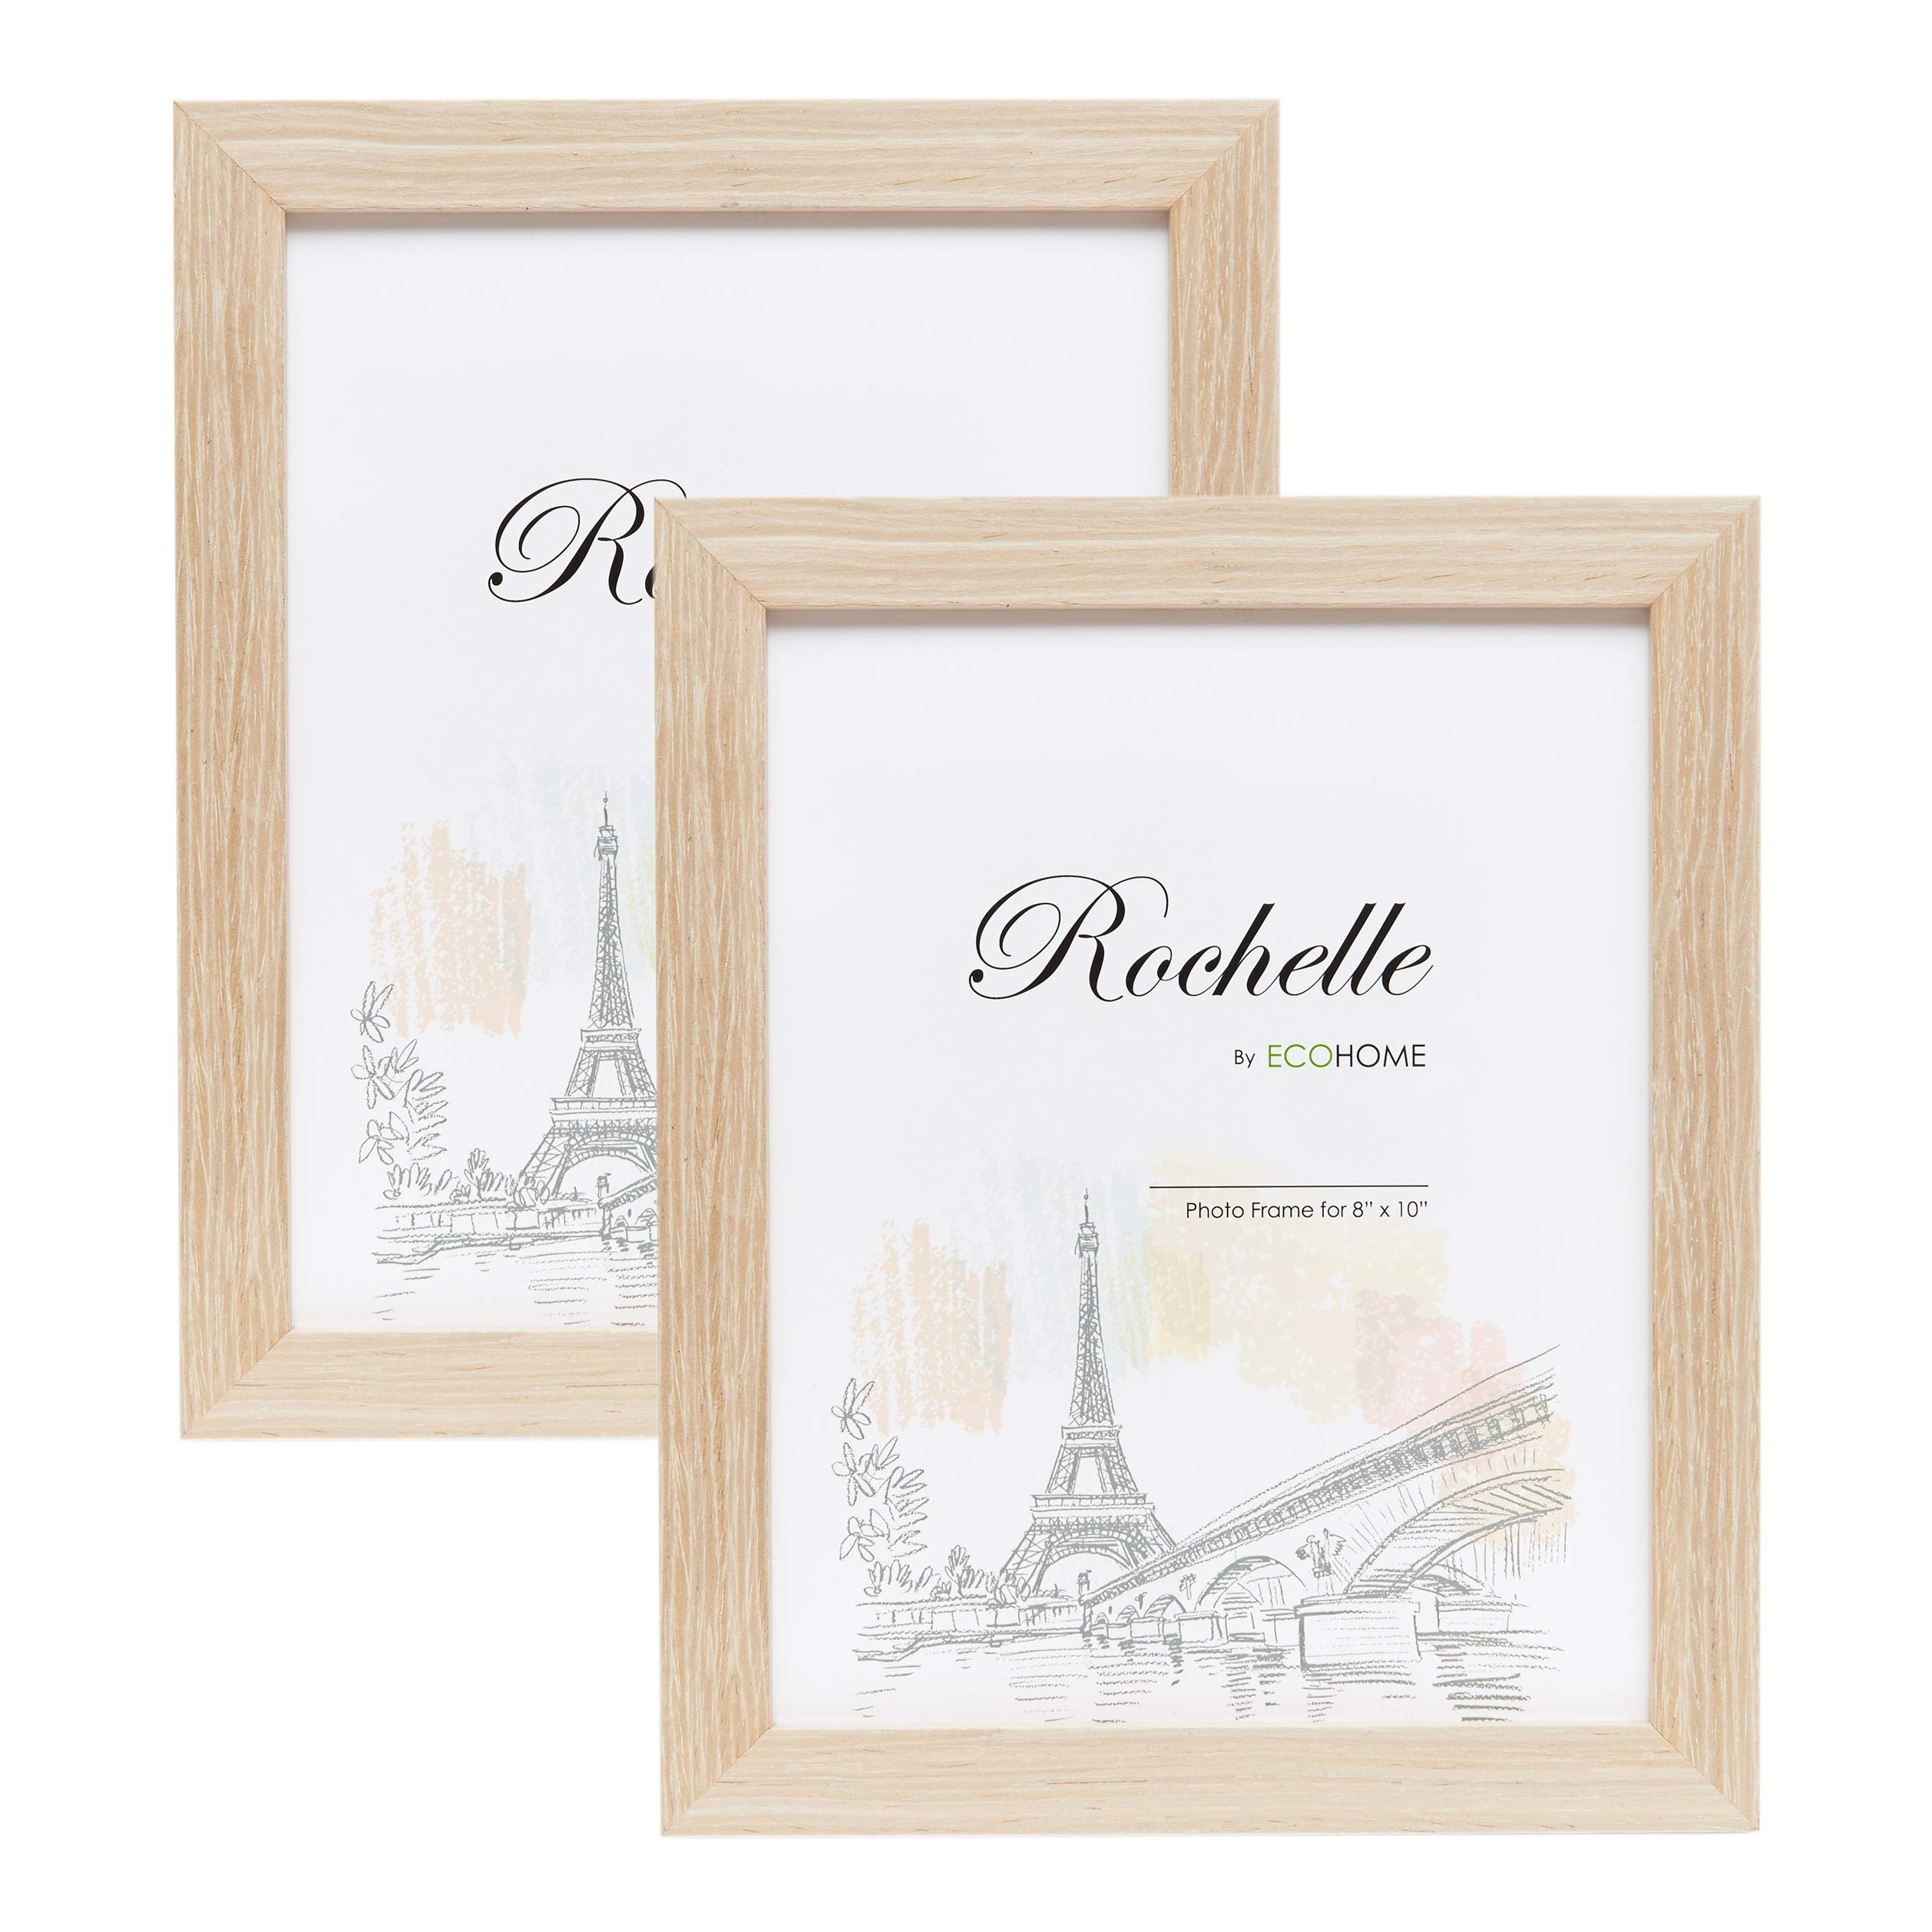 8x10 Picture Frame Distressed Cream - 2 Pack, Wall Mount Desktop Display, Frames by EcoHome by Eco-home